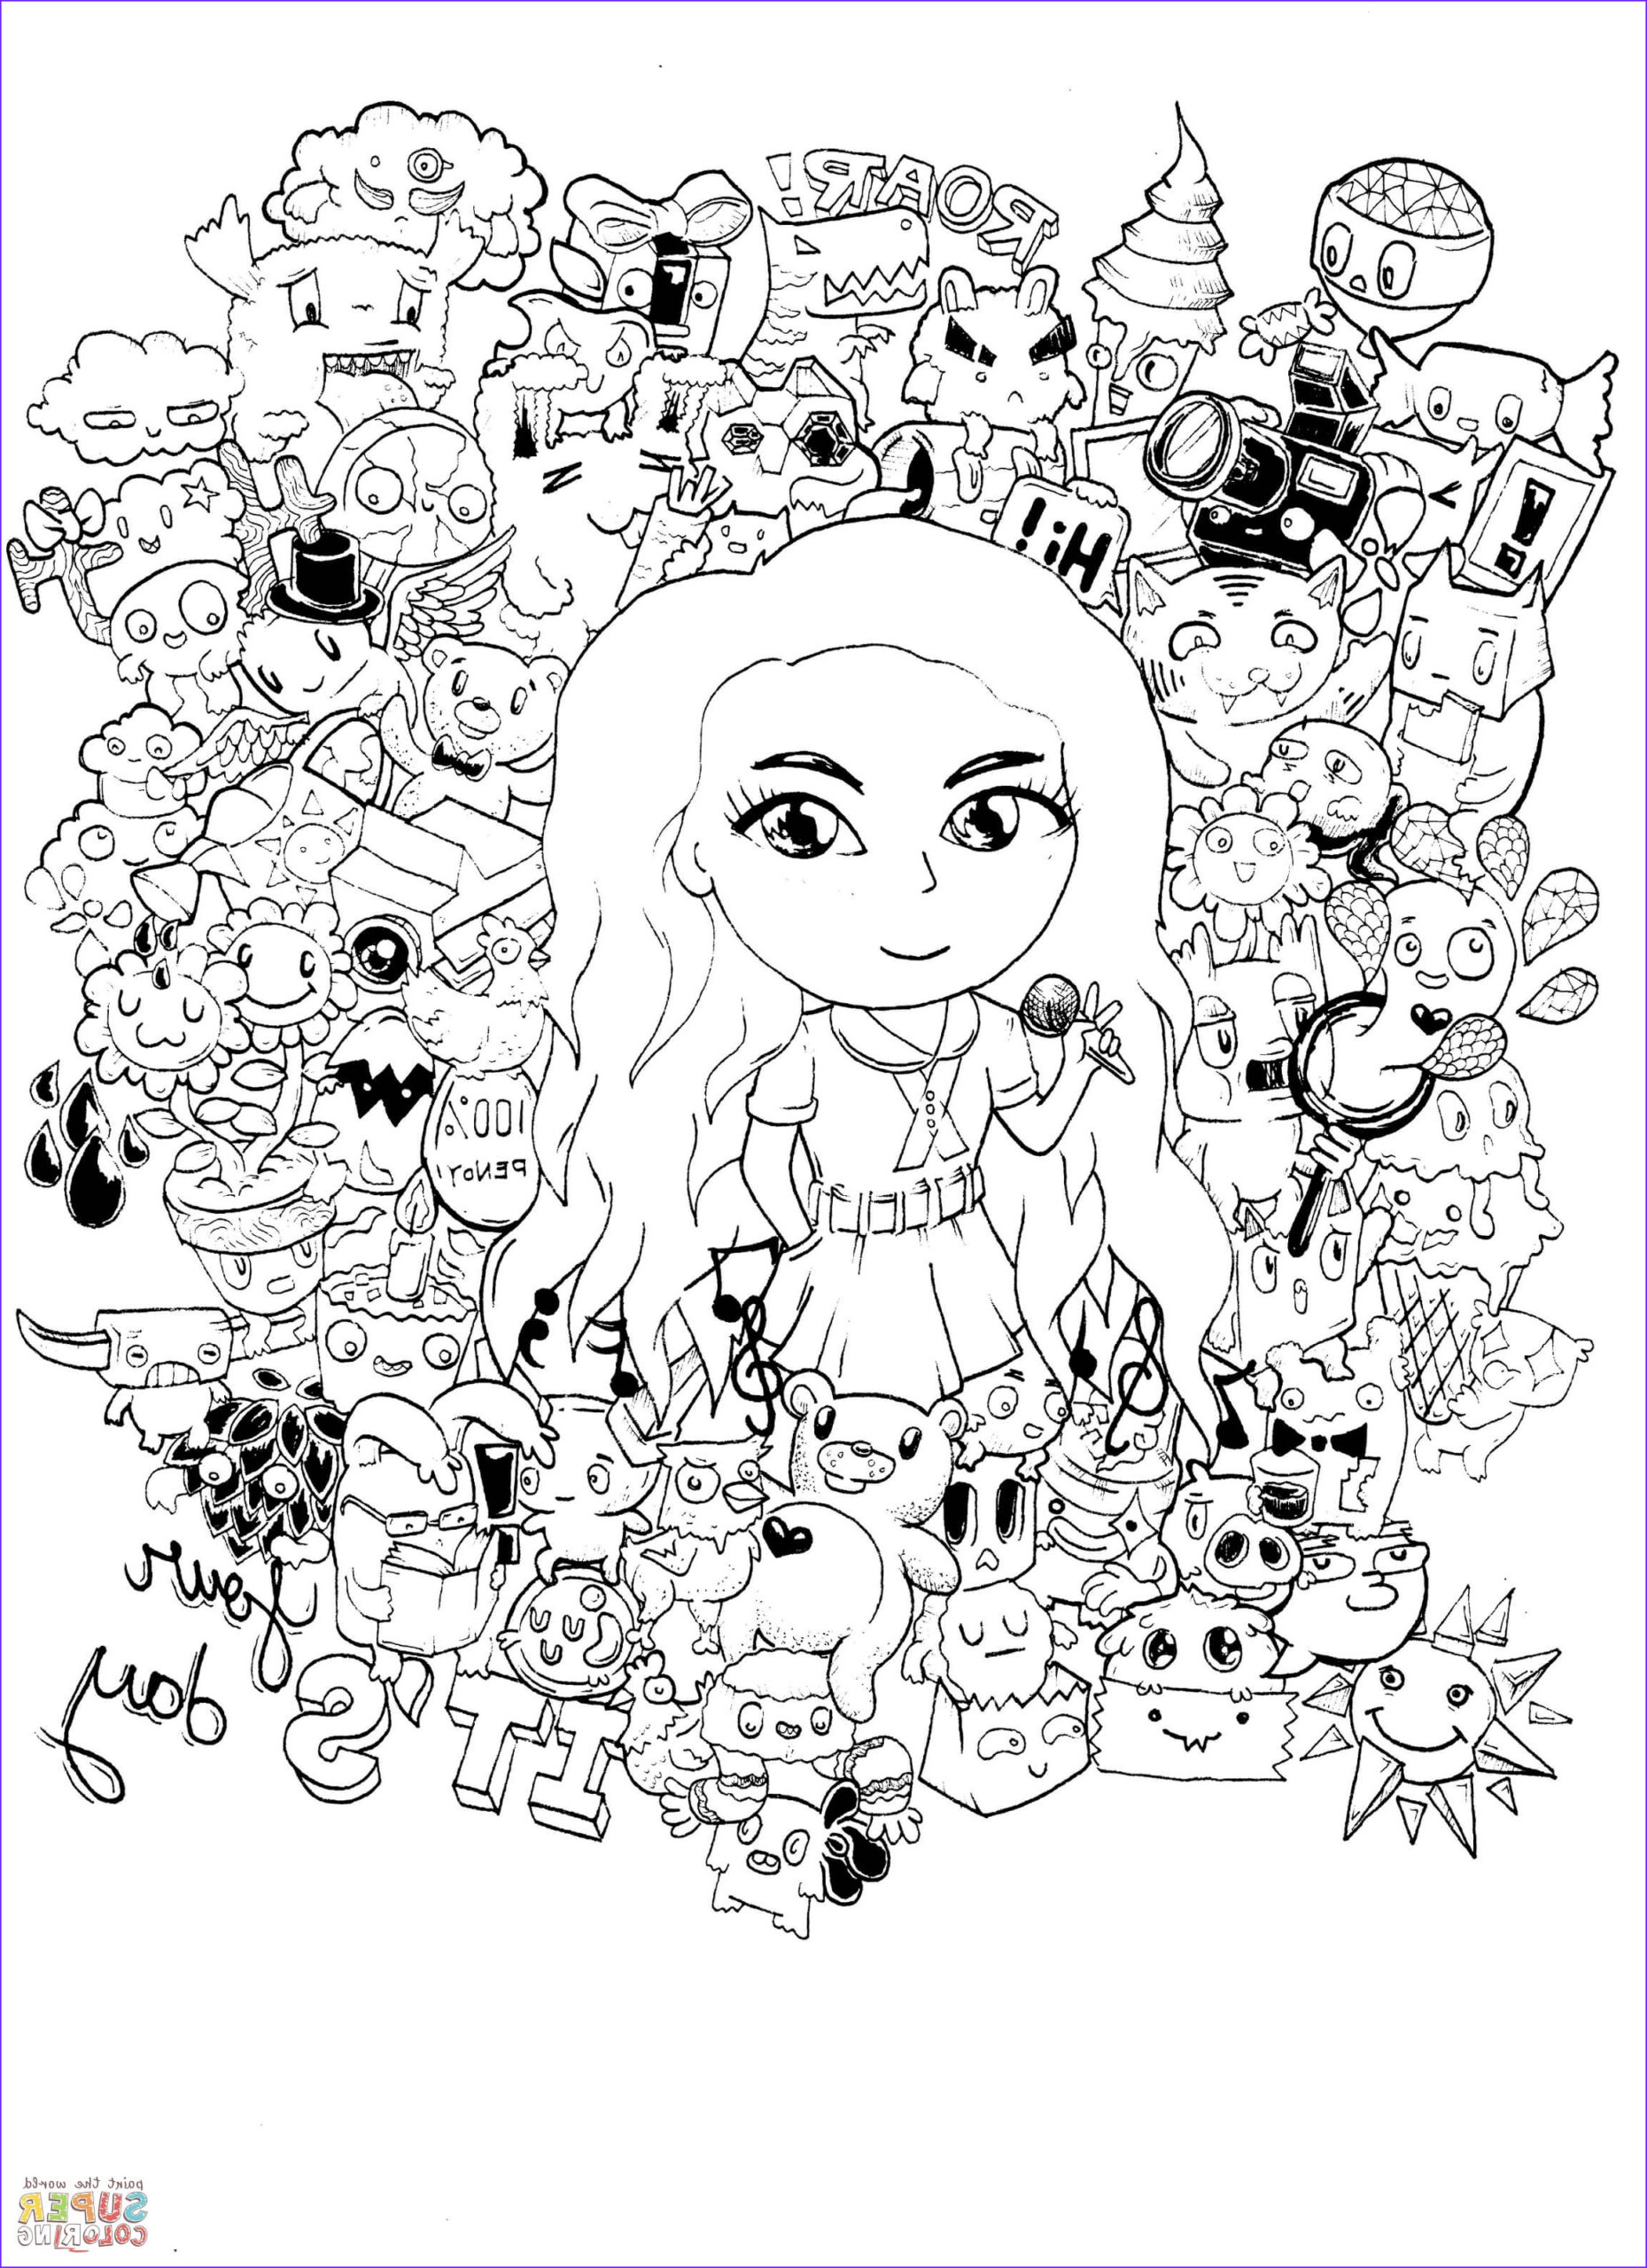 Doodle Coloring Book Cool Photos Gorgeous Doodle by Kent Sunglao Coloring Page